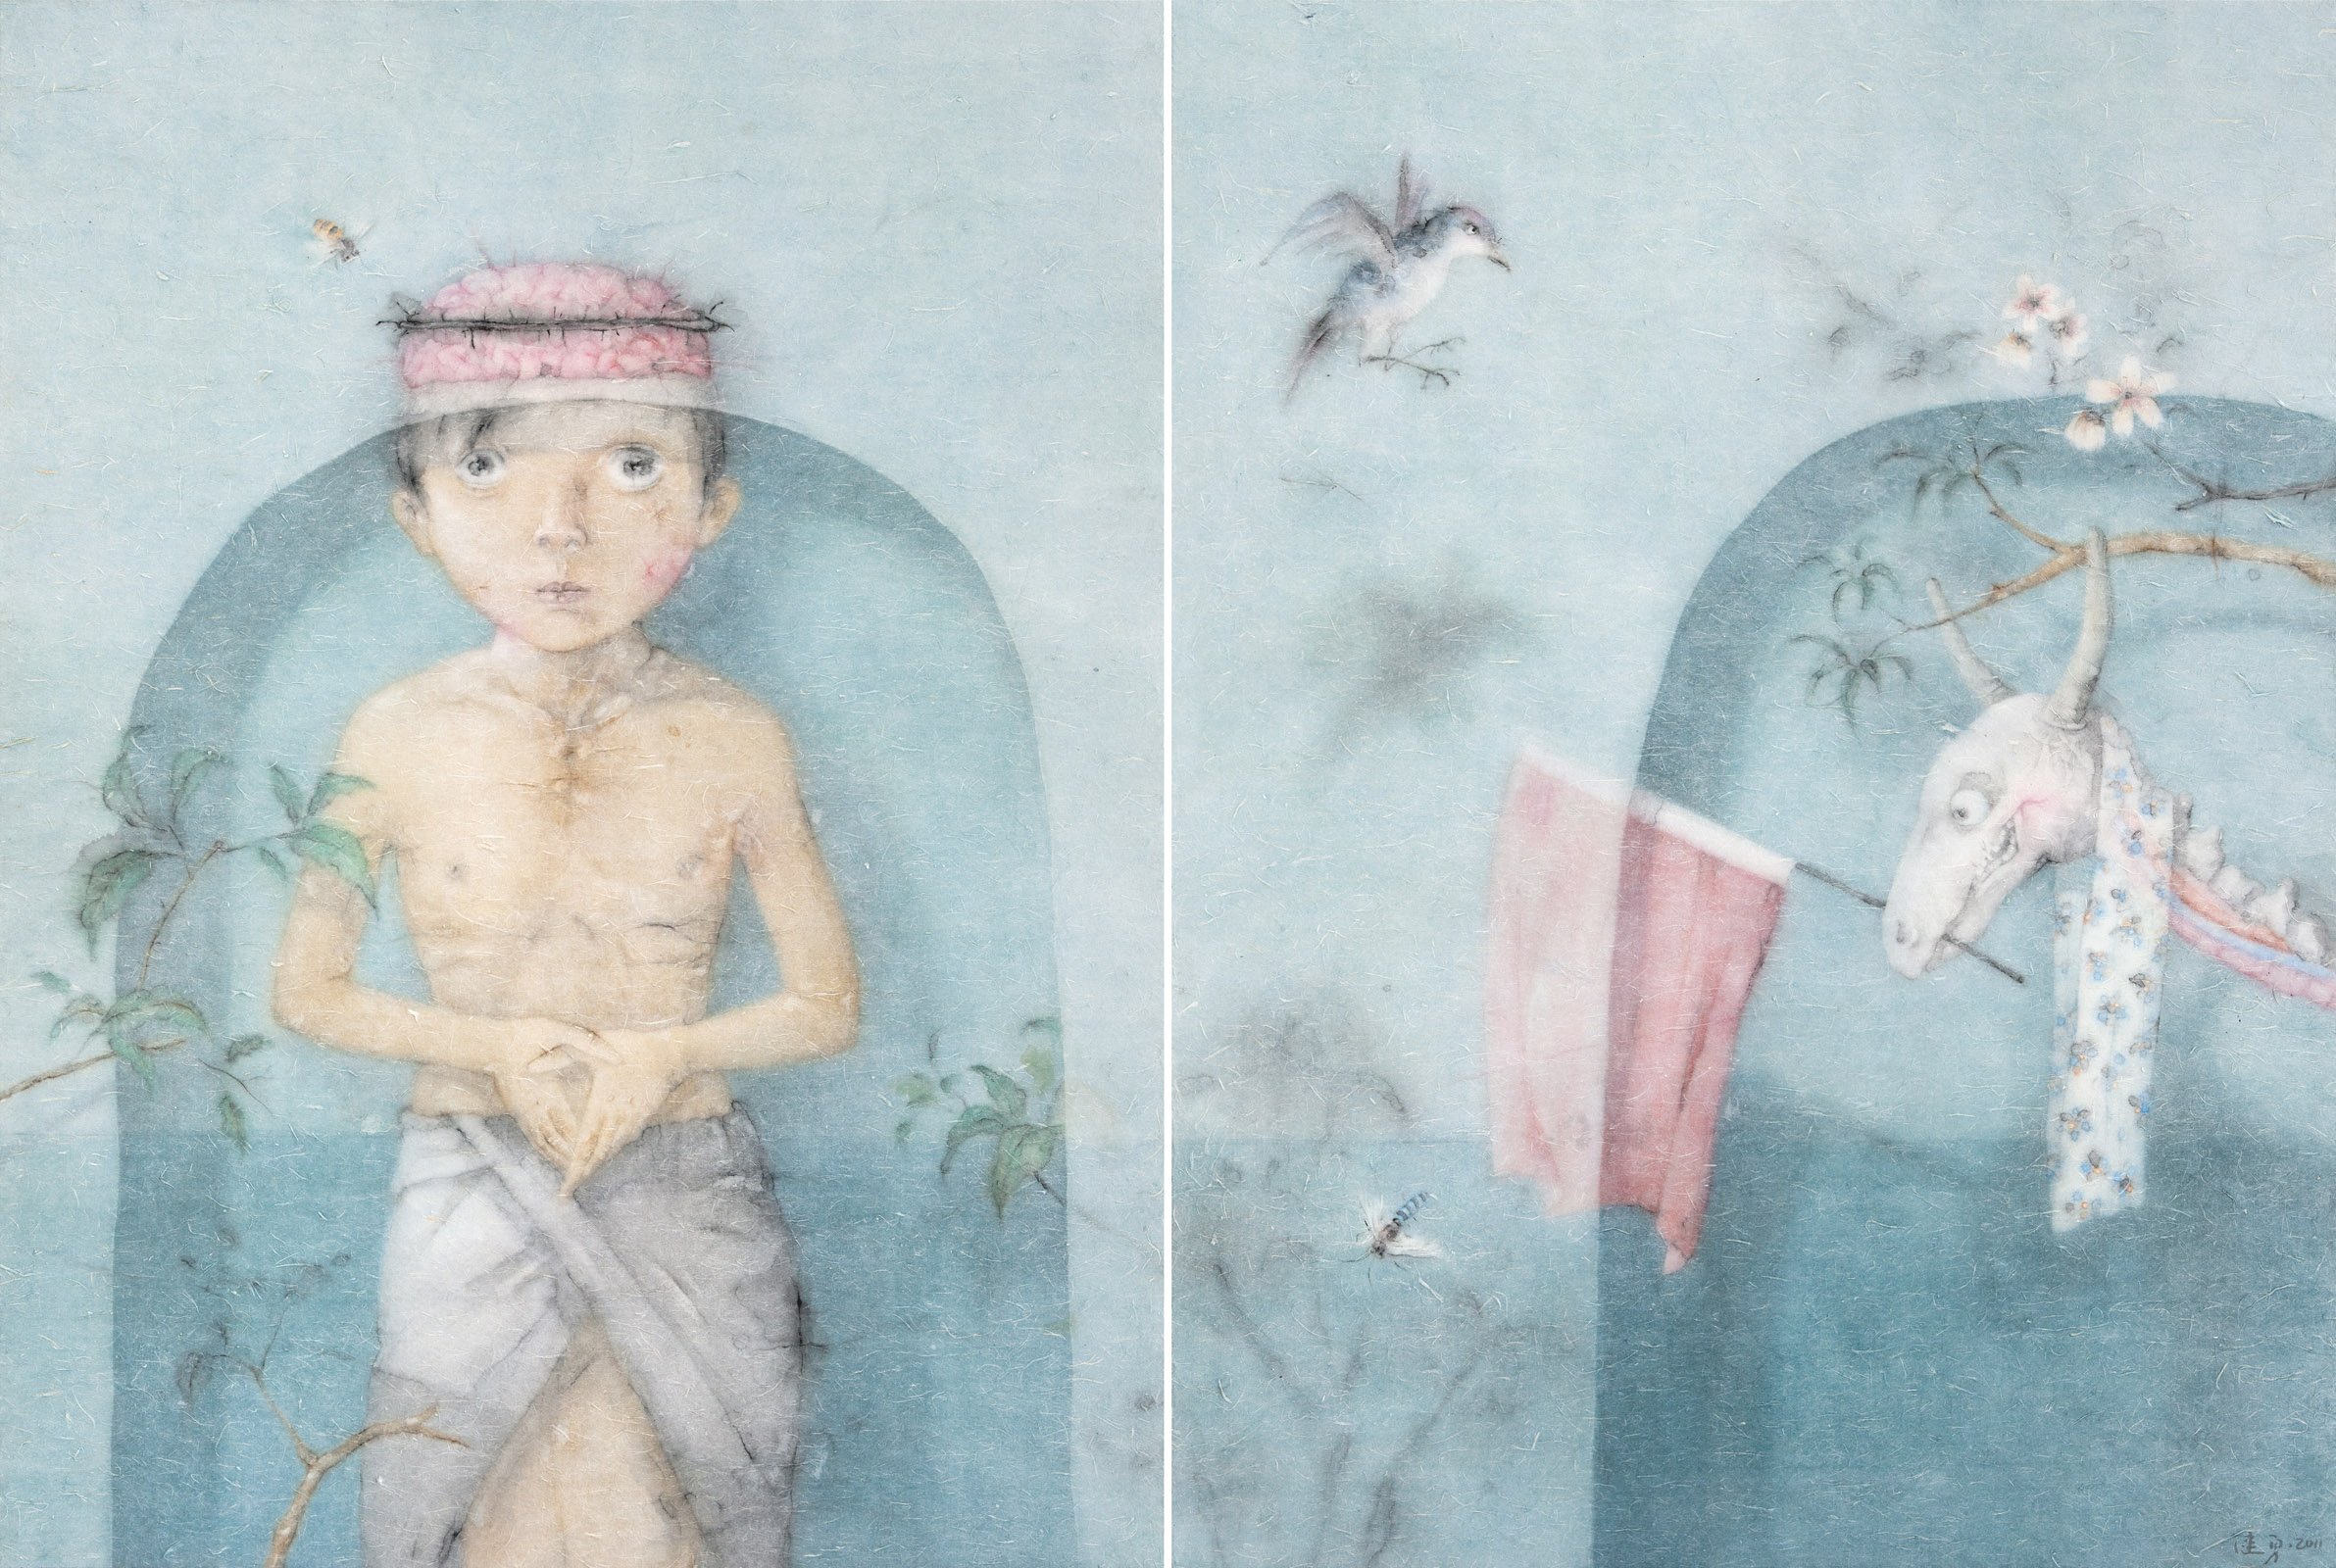 Zeng Jianyong 曾健勇, The Traditional Way 古道, 2011, Ink and color on paper 纸本设色, 95 x 128 cm x 2